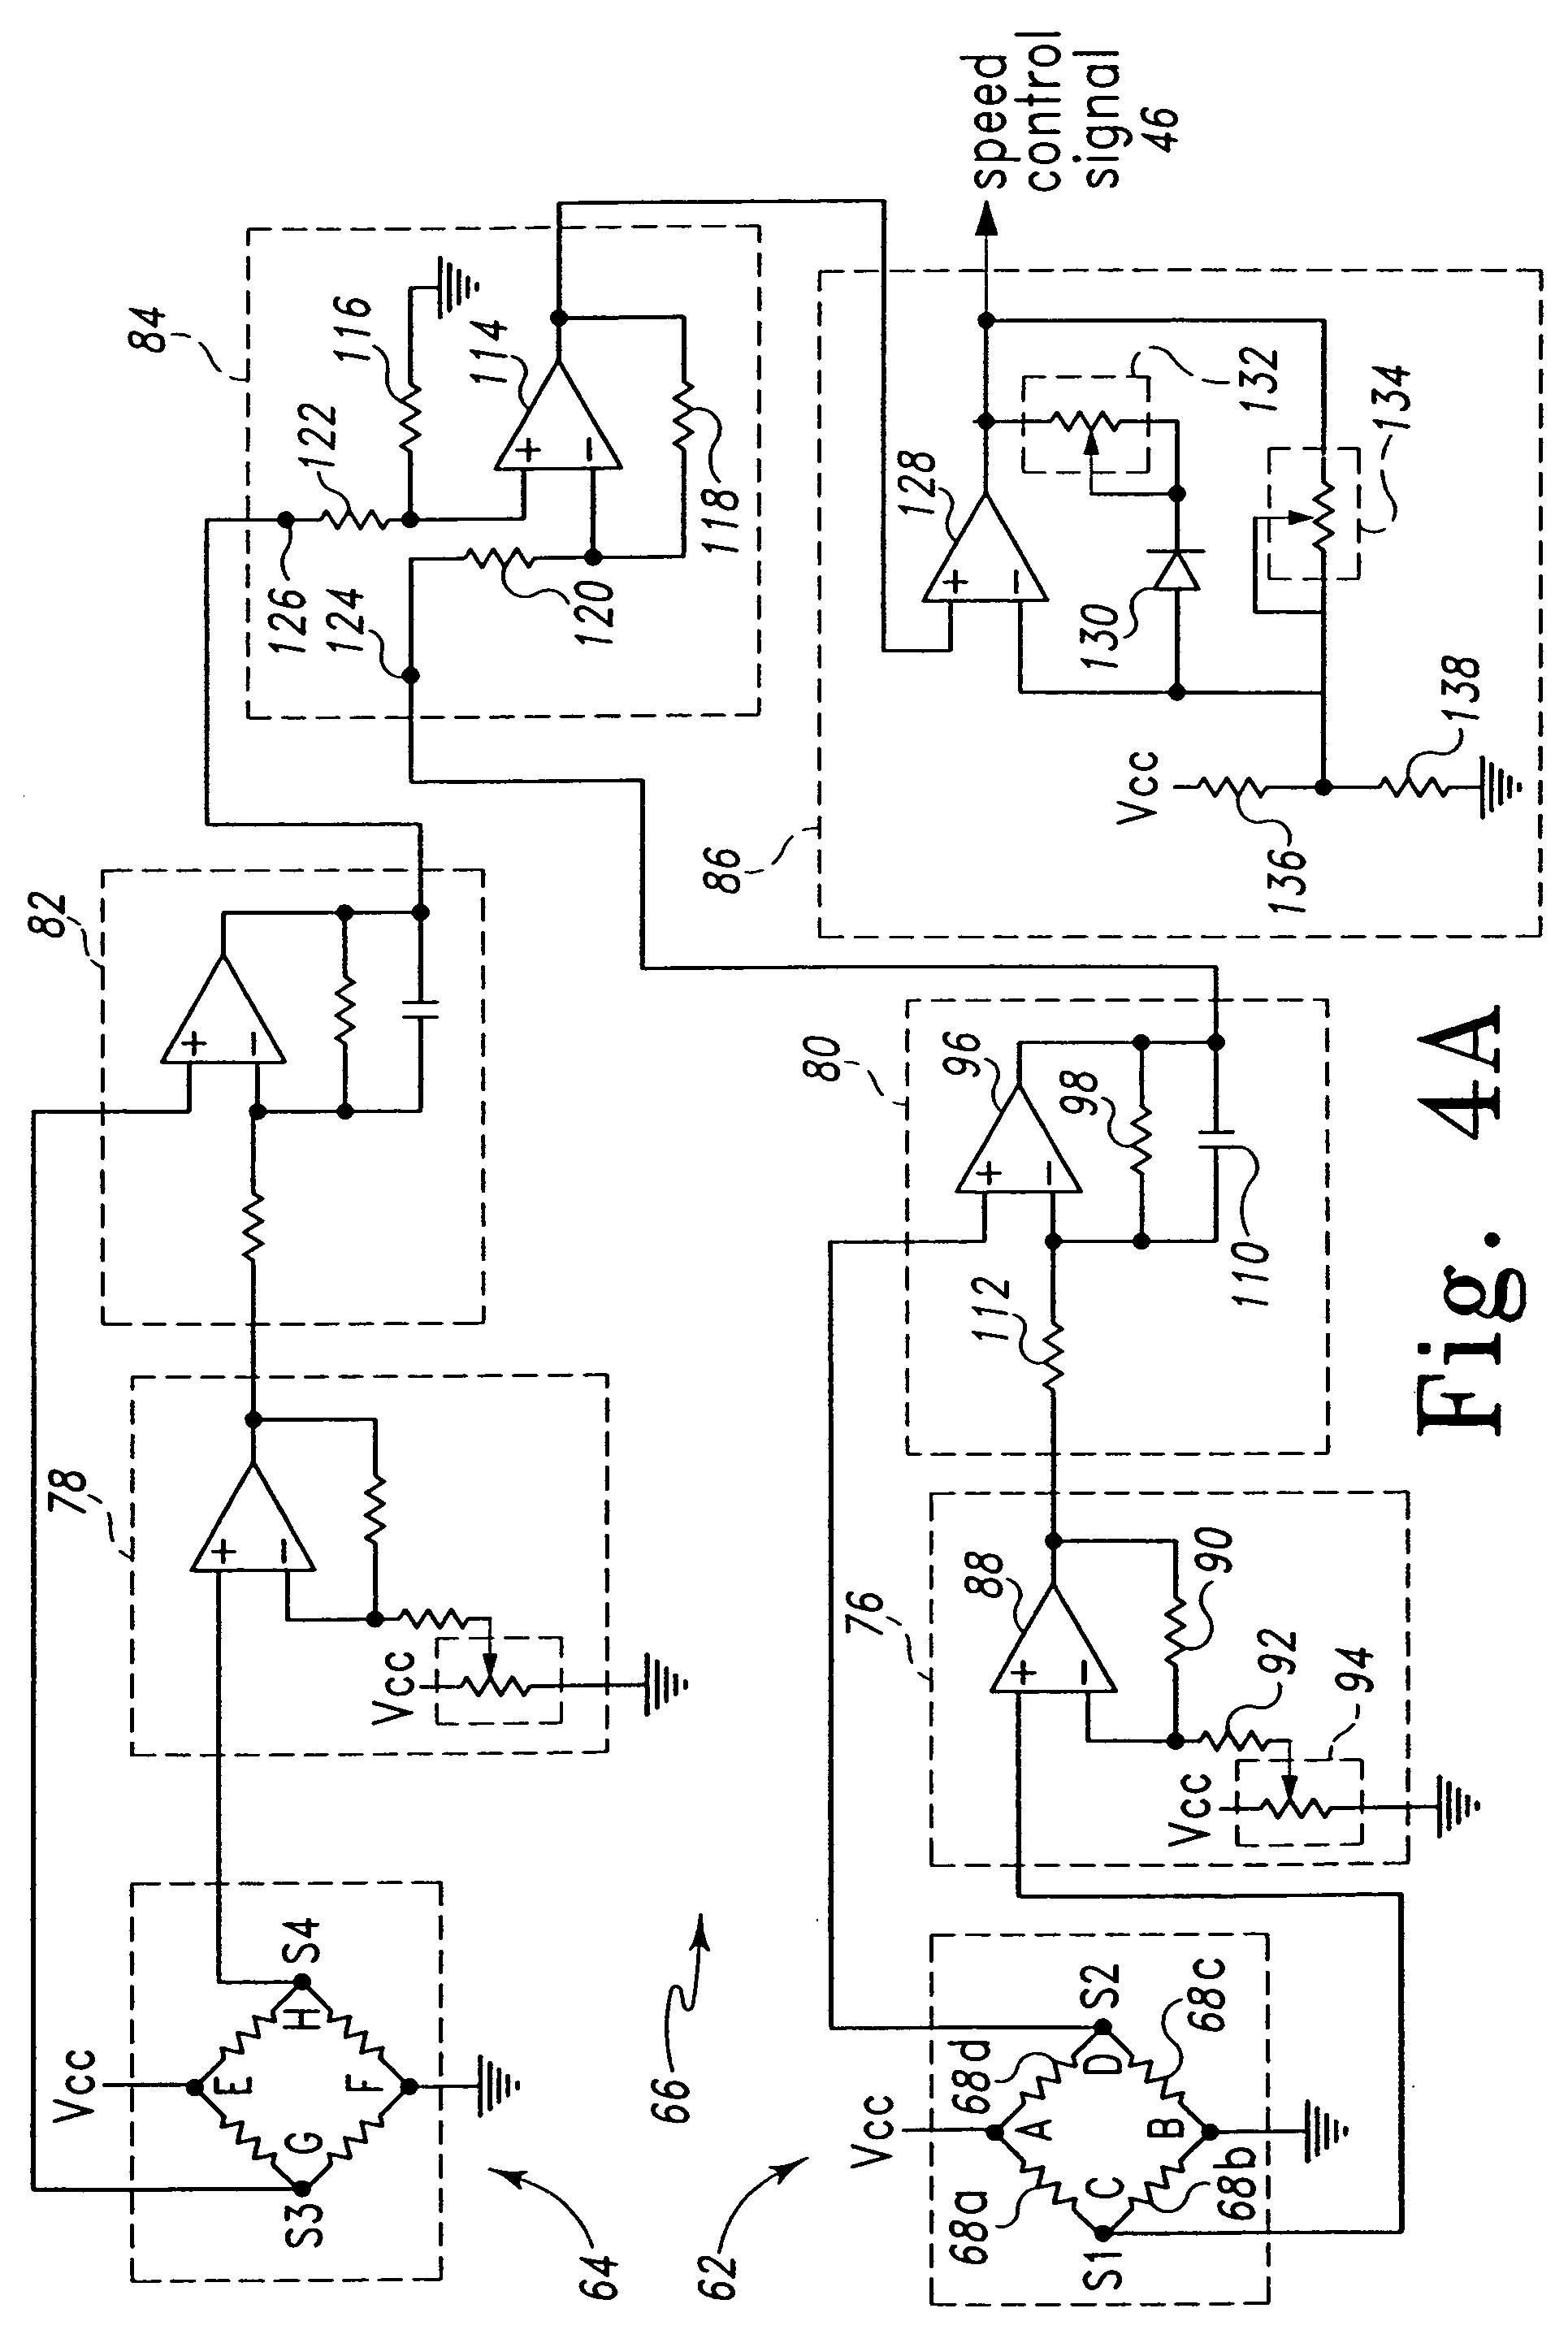 Curtis Et 126 Wiring Diagram 28 Images Us07083012 20060801 D00005 Patent Us7083012 Motorized Traction Device For A Patient Support Pmc 1204